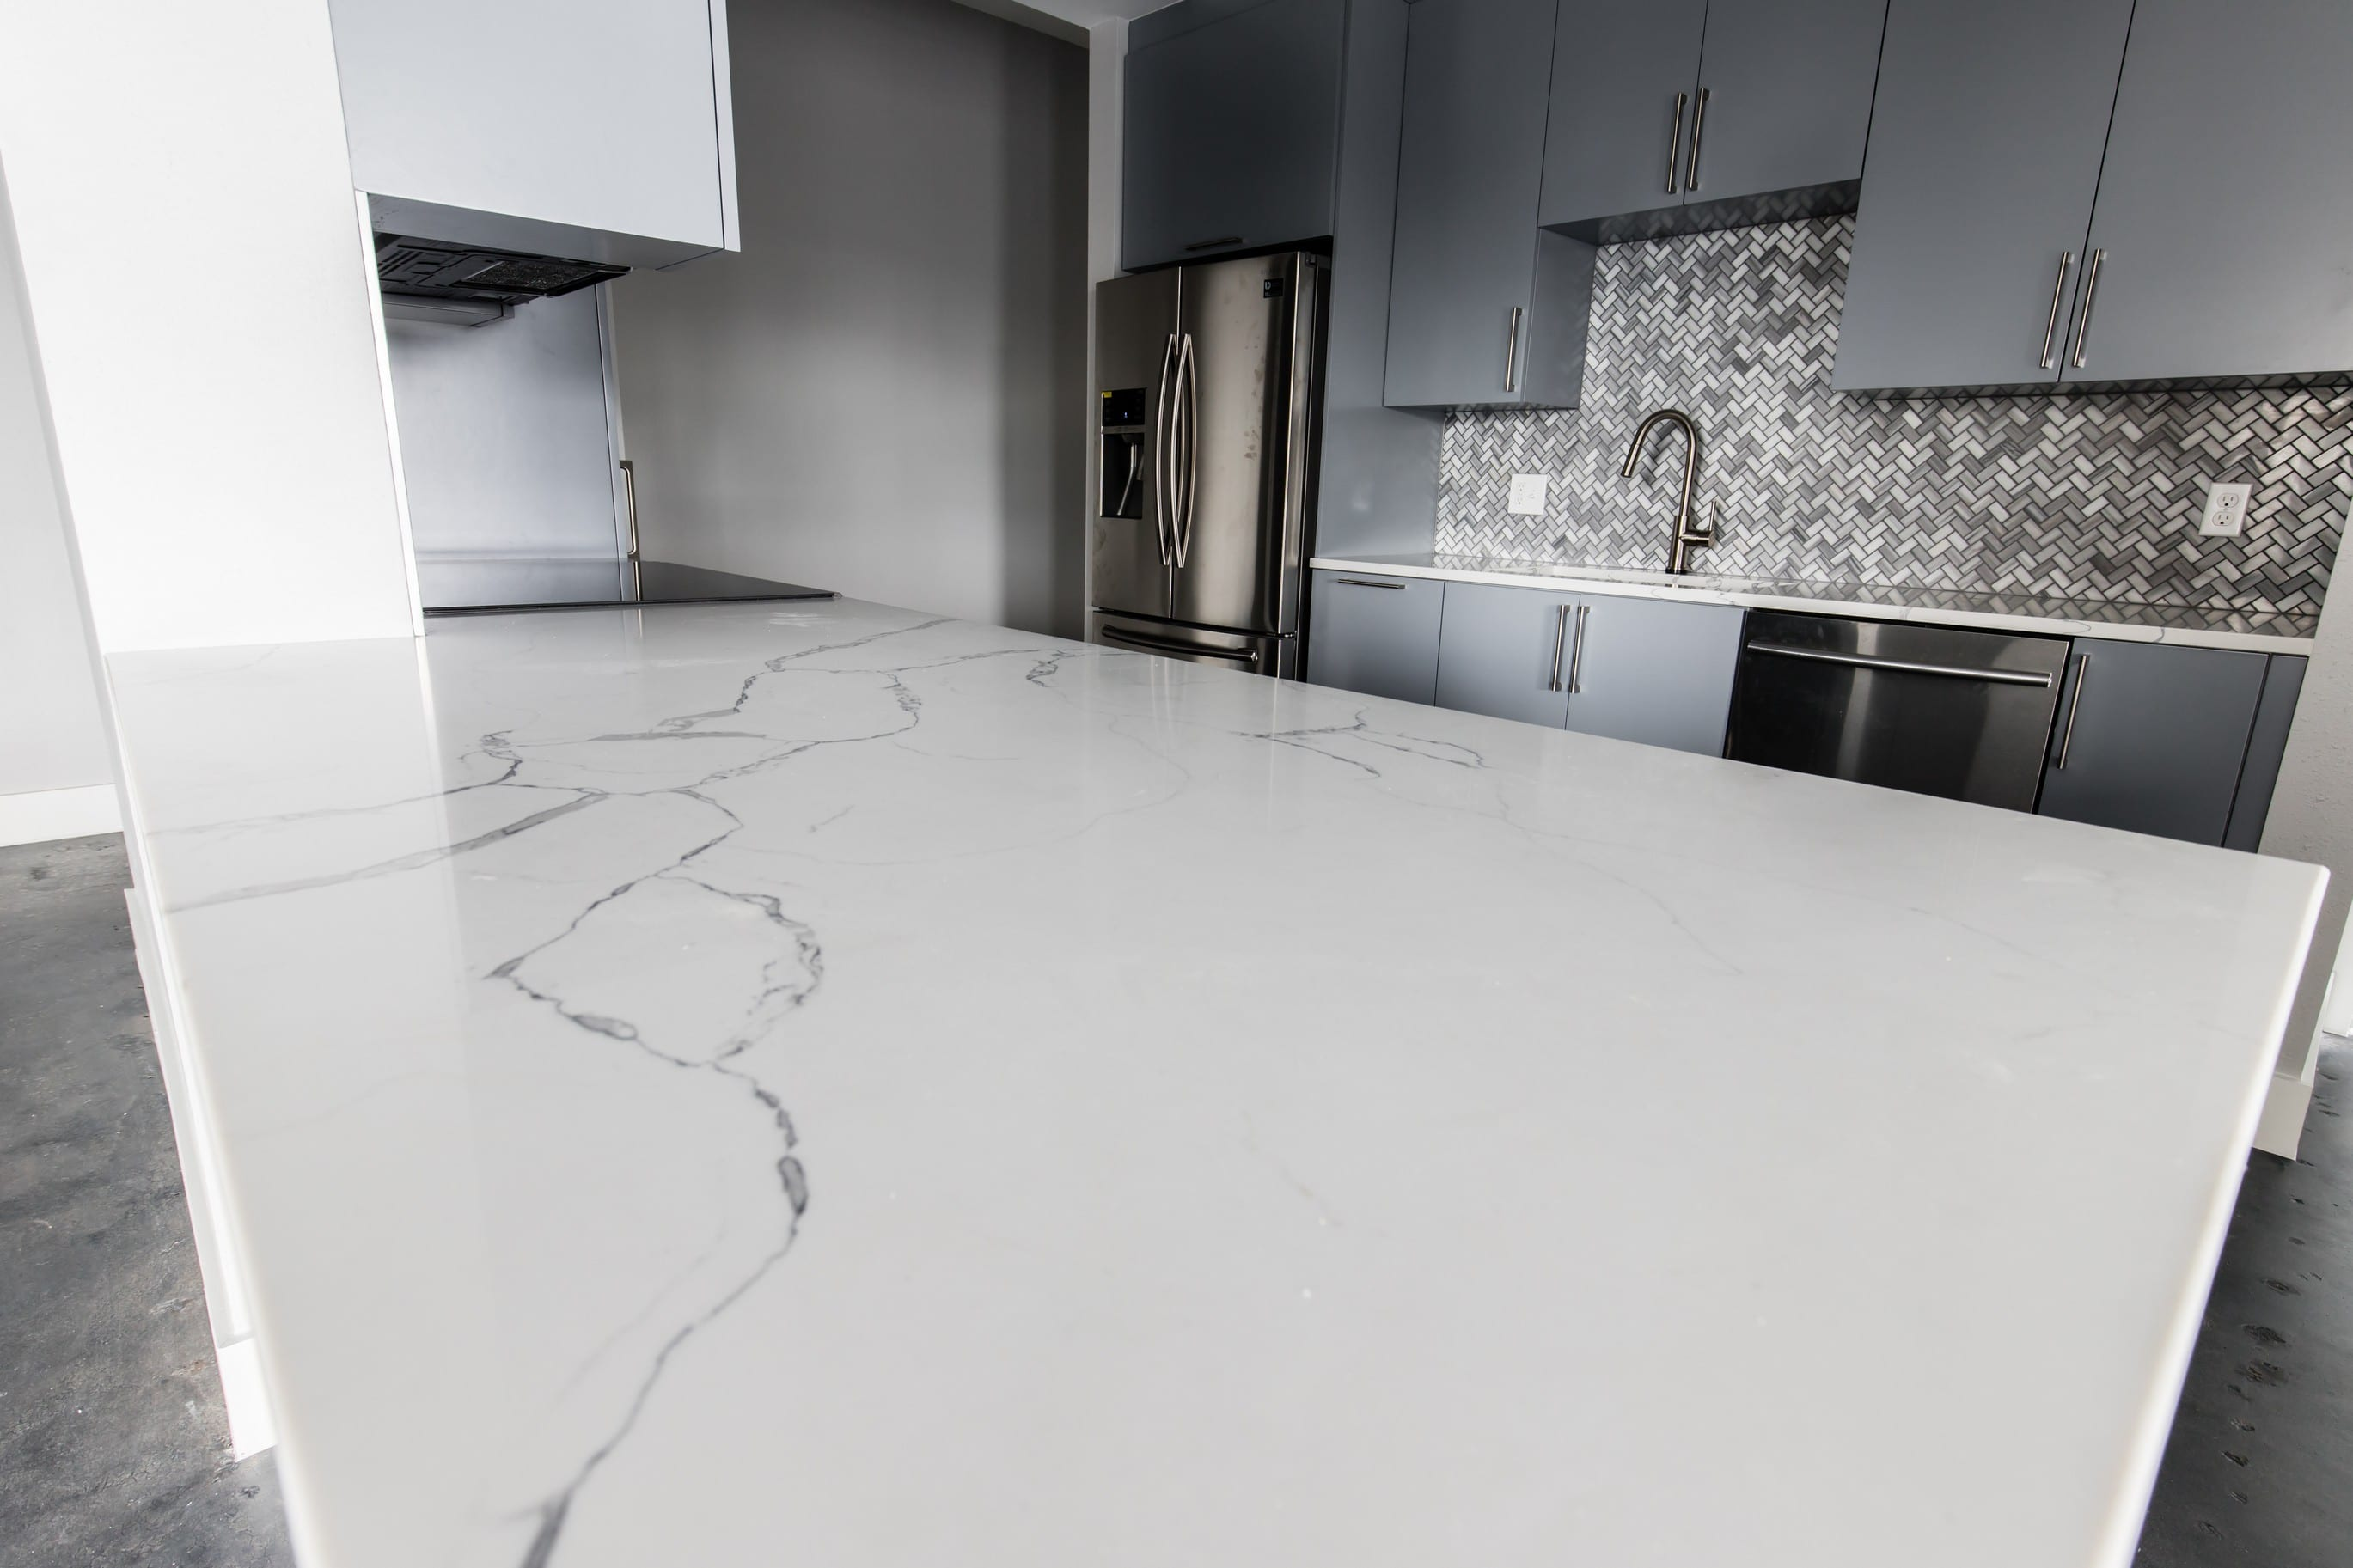 The Kitchen Countertops Are Simple Yet Stunning Featuring Statuary Clique Quartz From Msi Surfaces Which Is